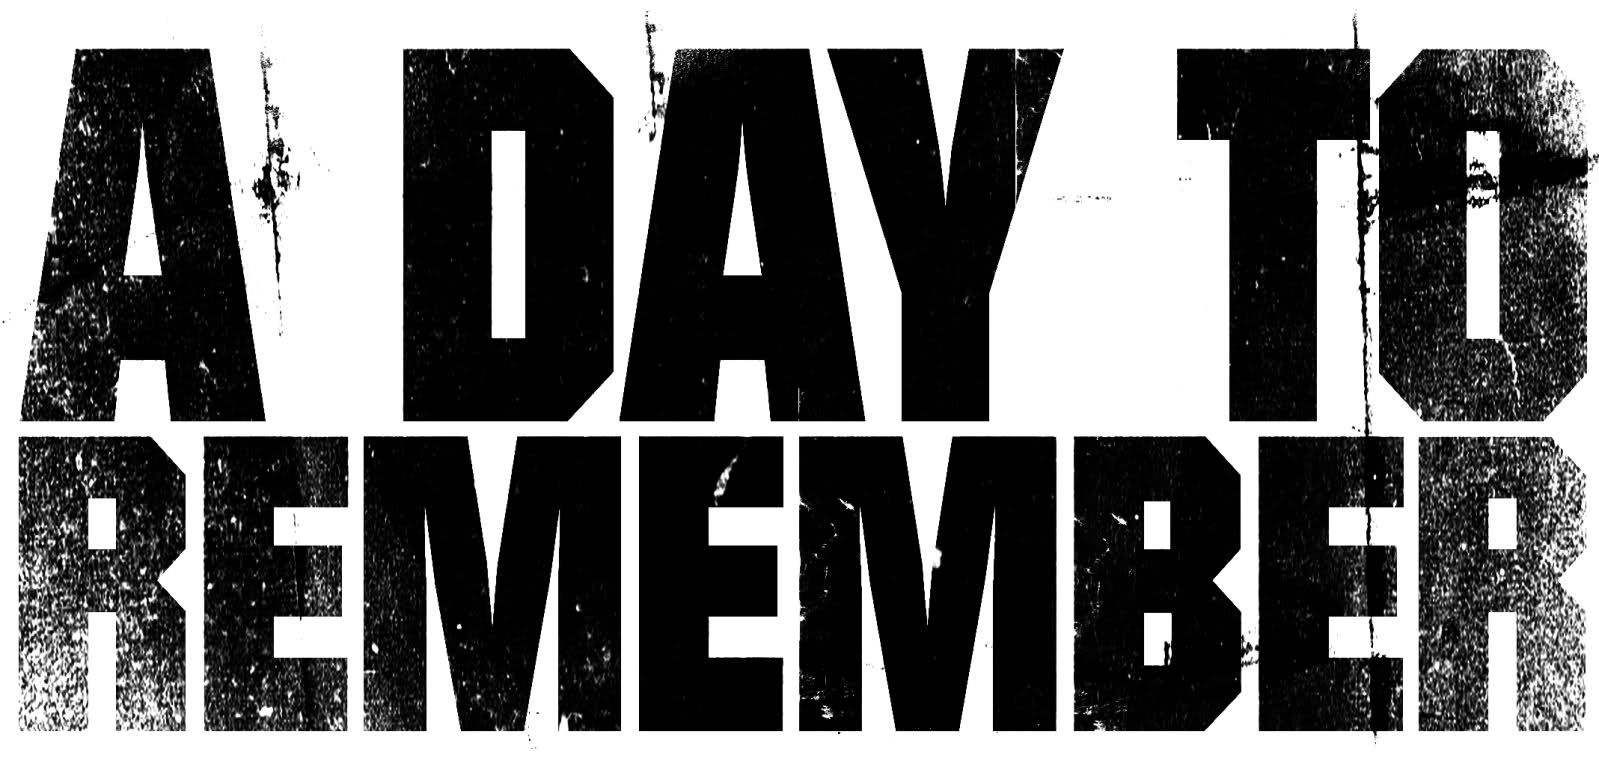 name a day to remember wallpaper 1911 category a day to remember image 1599x779